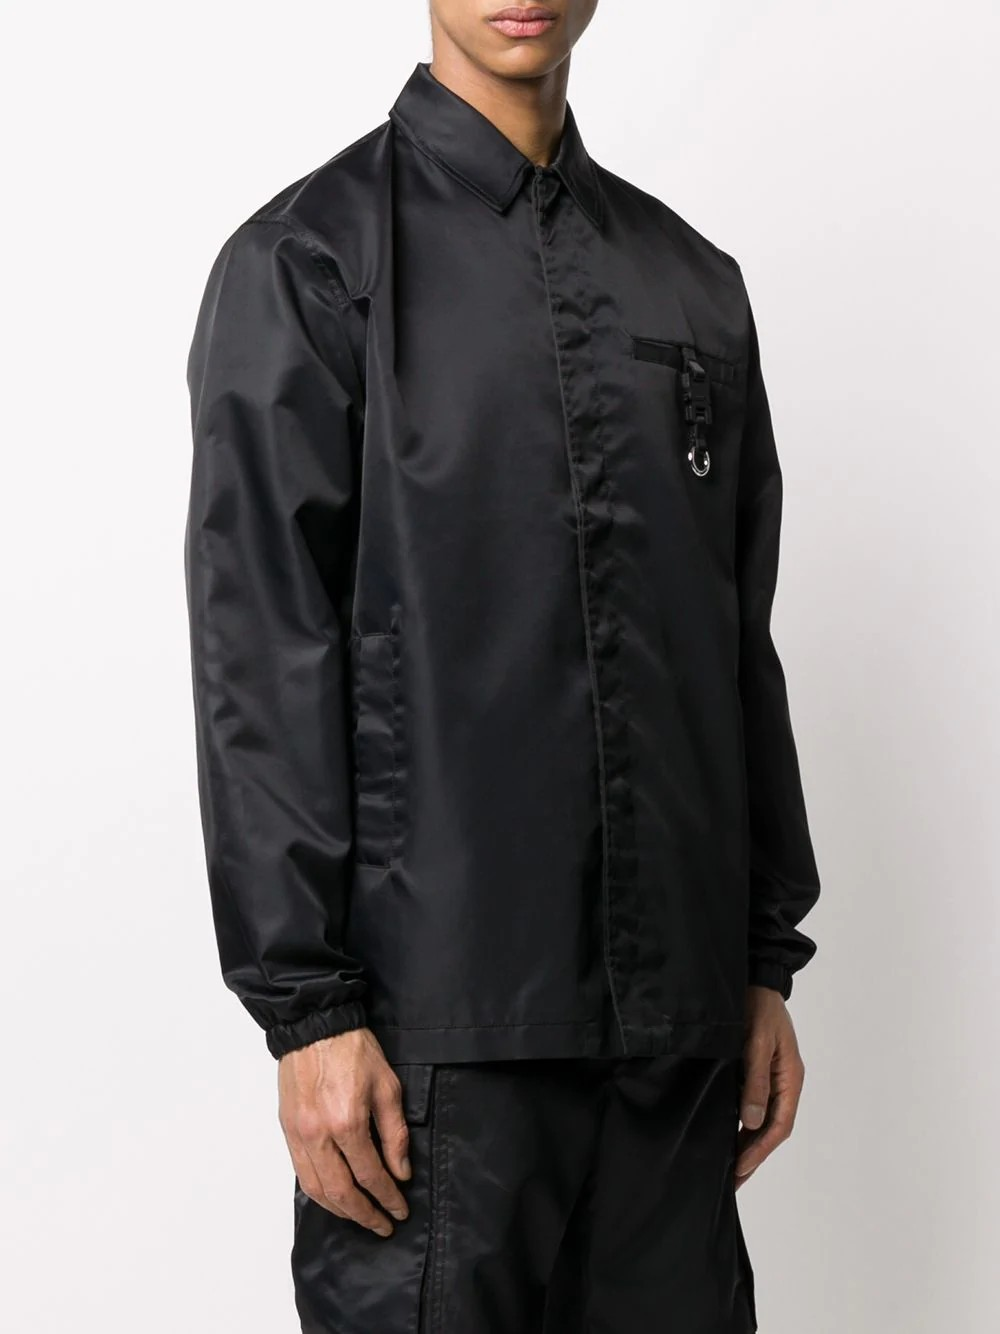 ALYX BLACK COACH JACKET